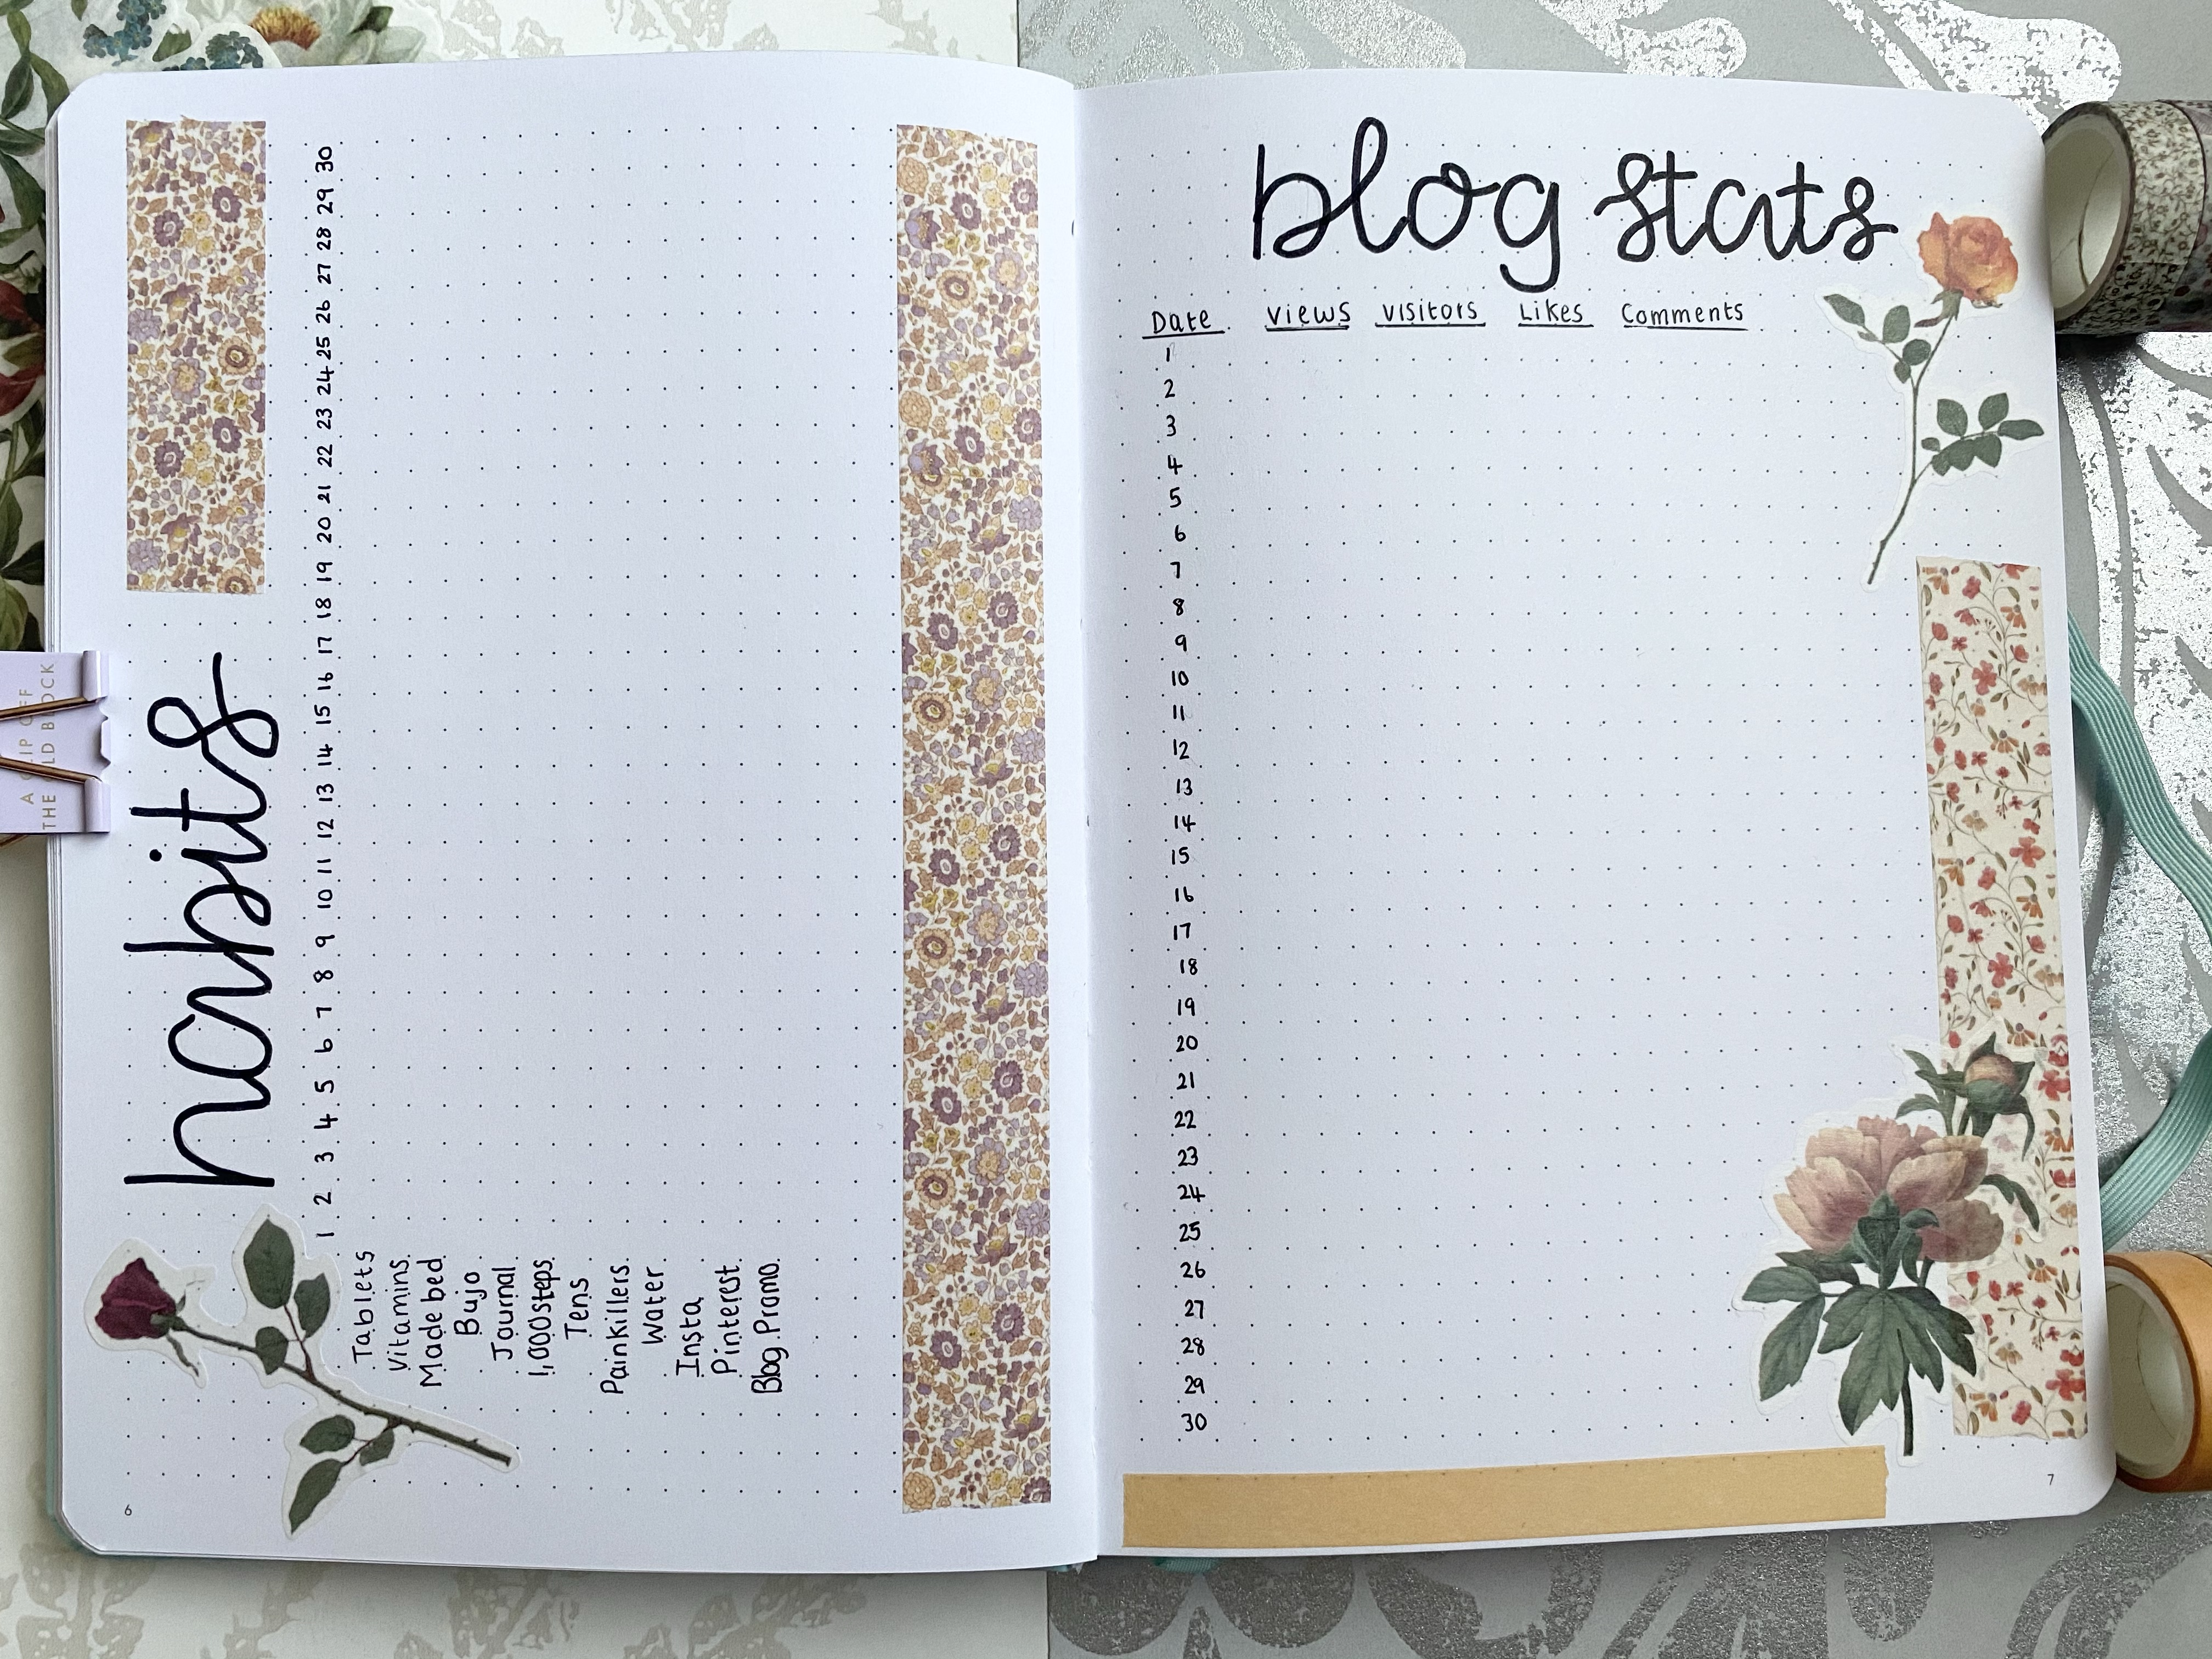 A bullet journal double page spread. On the left hand page is a habit tracker in a table form with washi tape. On the right page is a blog stats tracker with washi tape and flower sticker down the right side of the page.